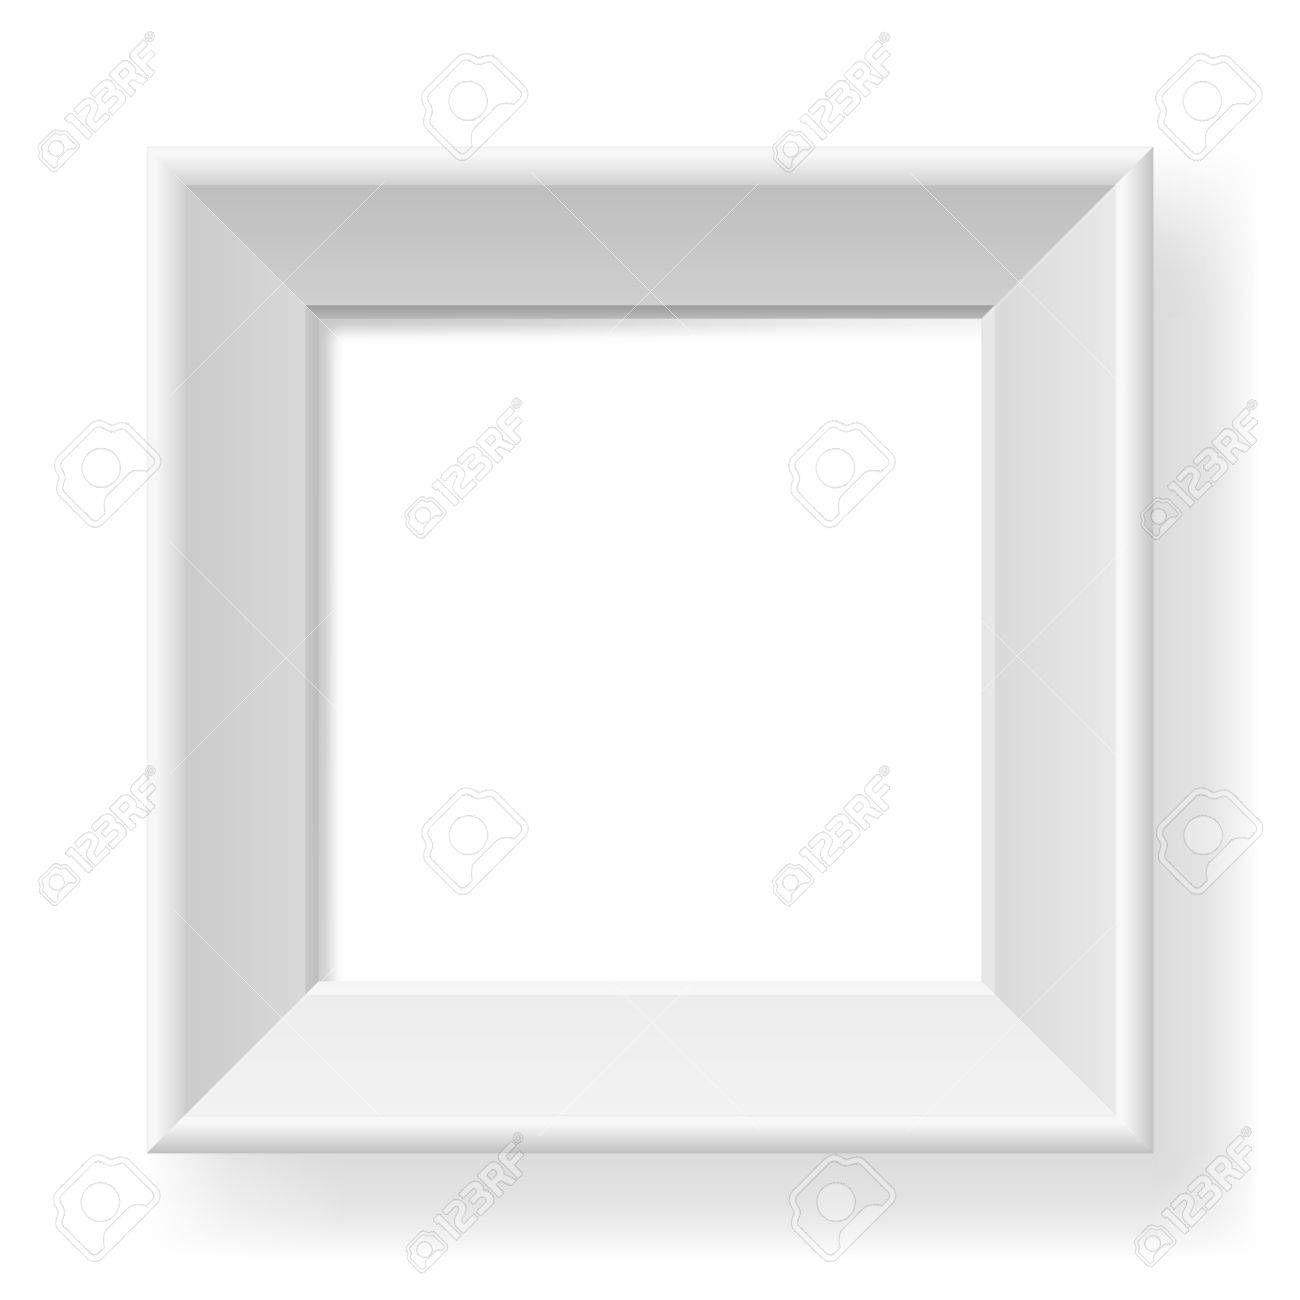 Realistic white frame. Form of the number one. Illustration on white background Stock Vector - 13873561